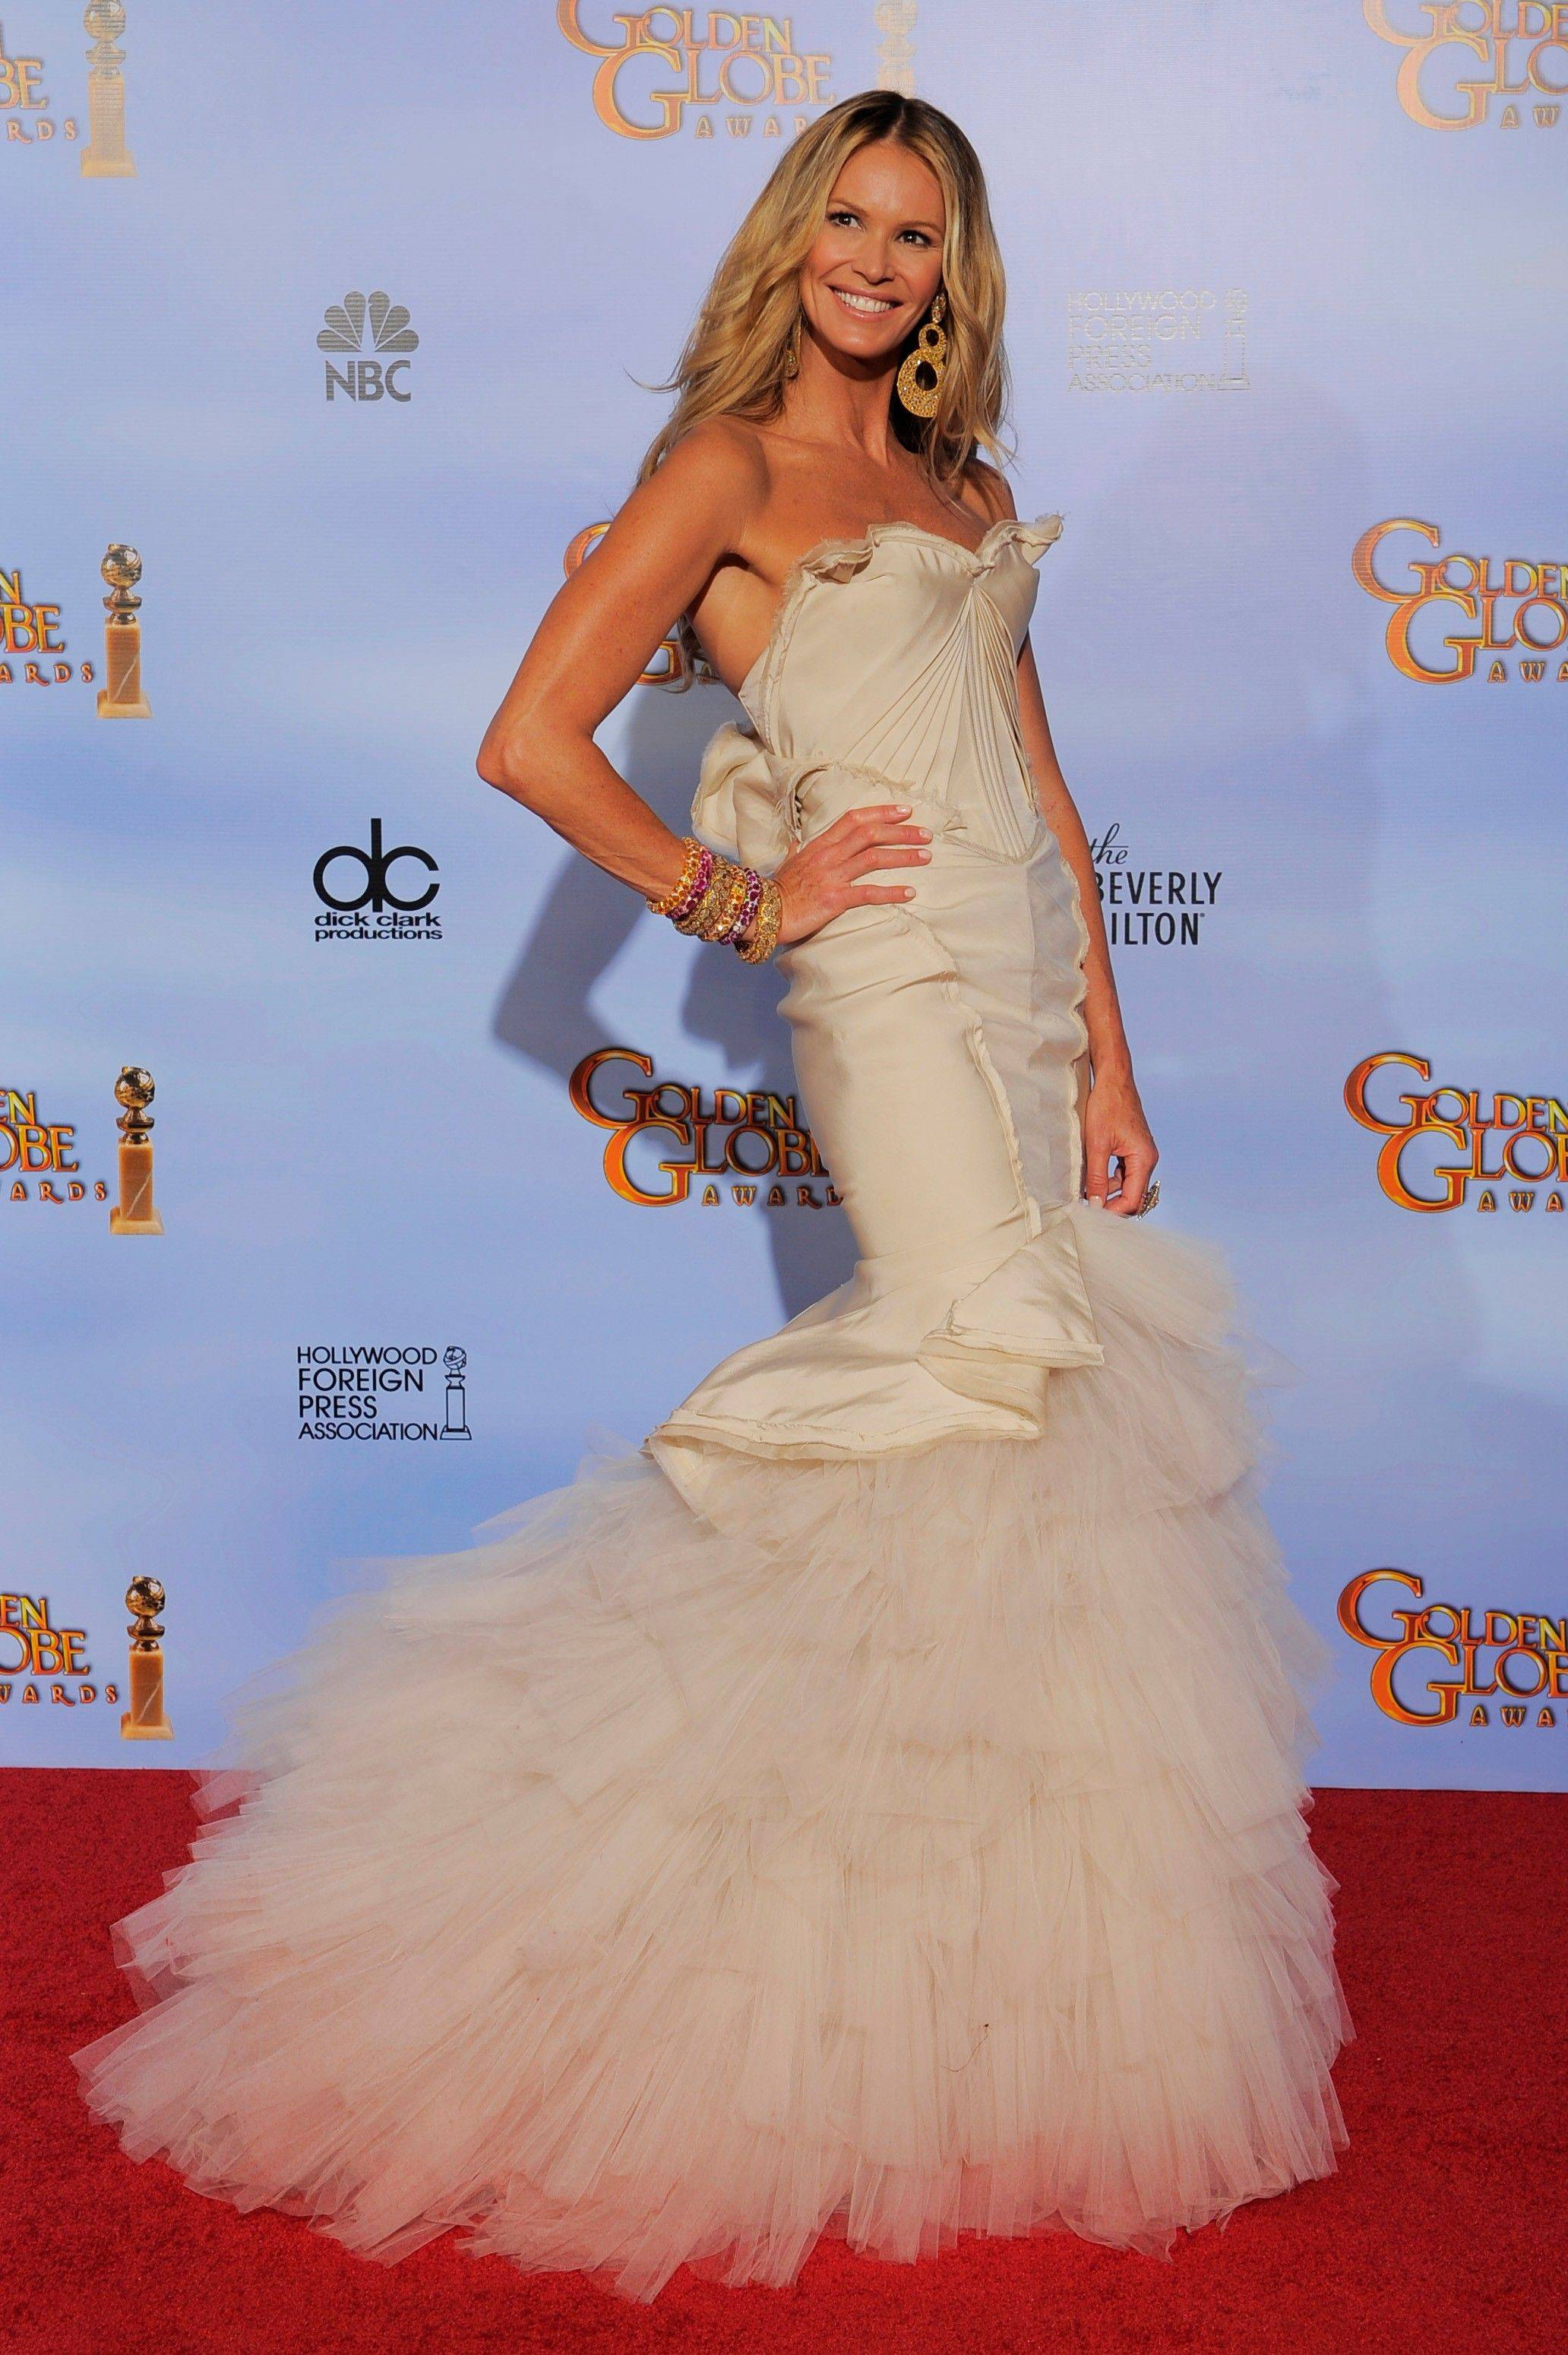 Elle Macpherson poses backstage during the 69th Annual Golden Globe Awards.